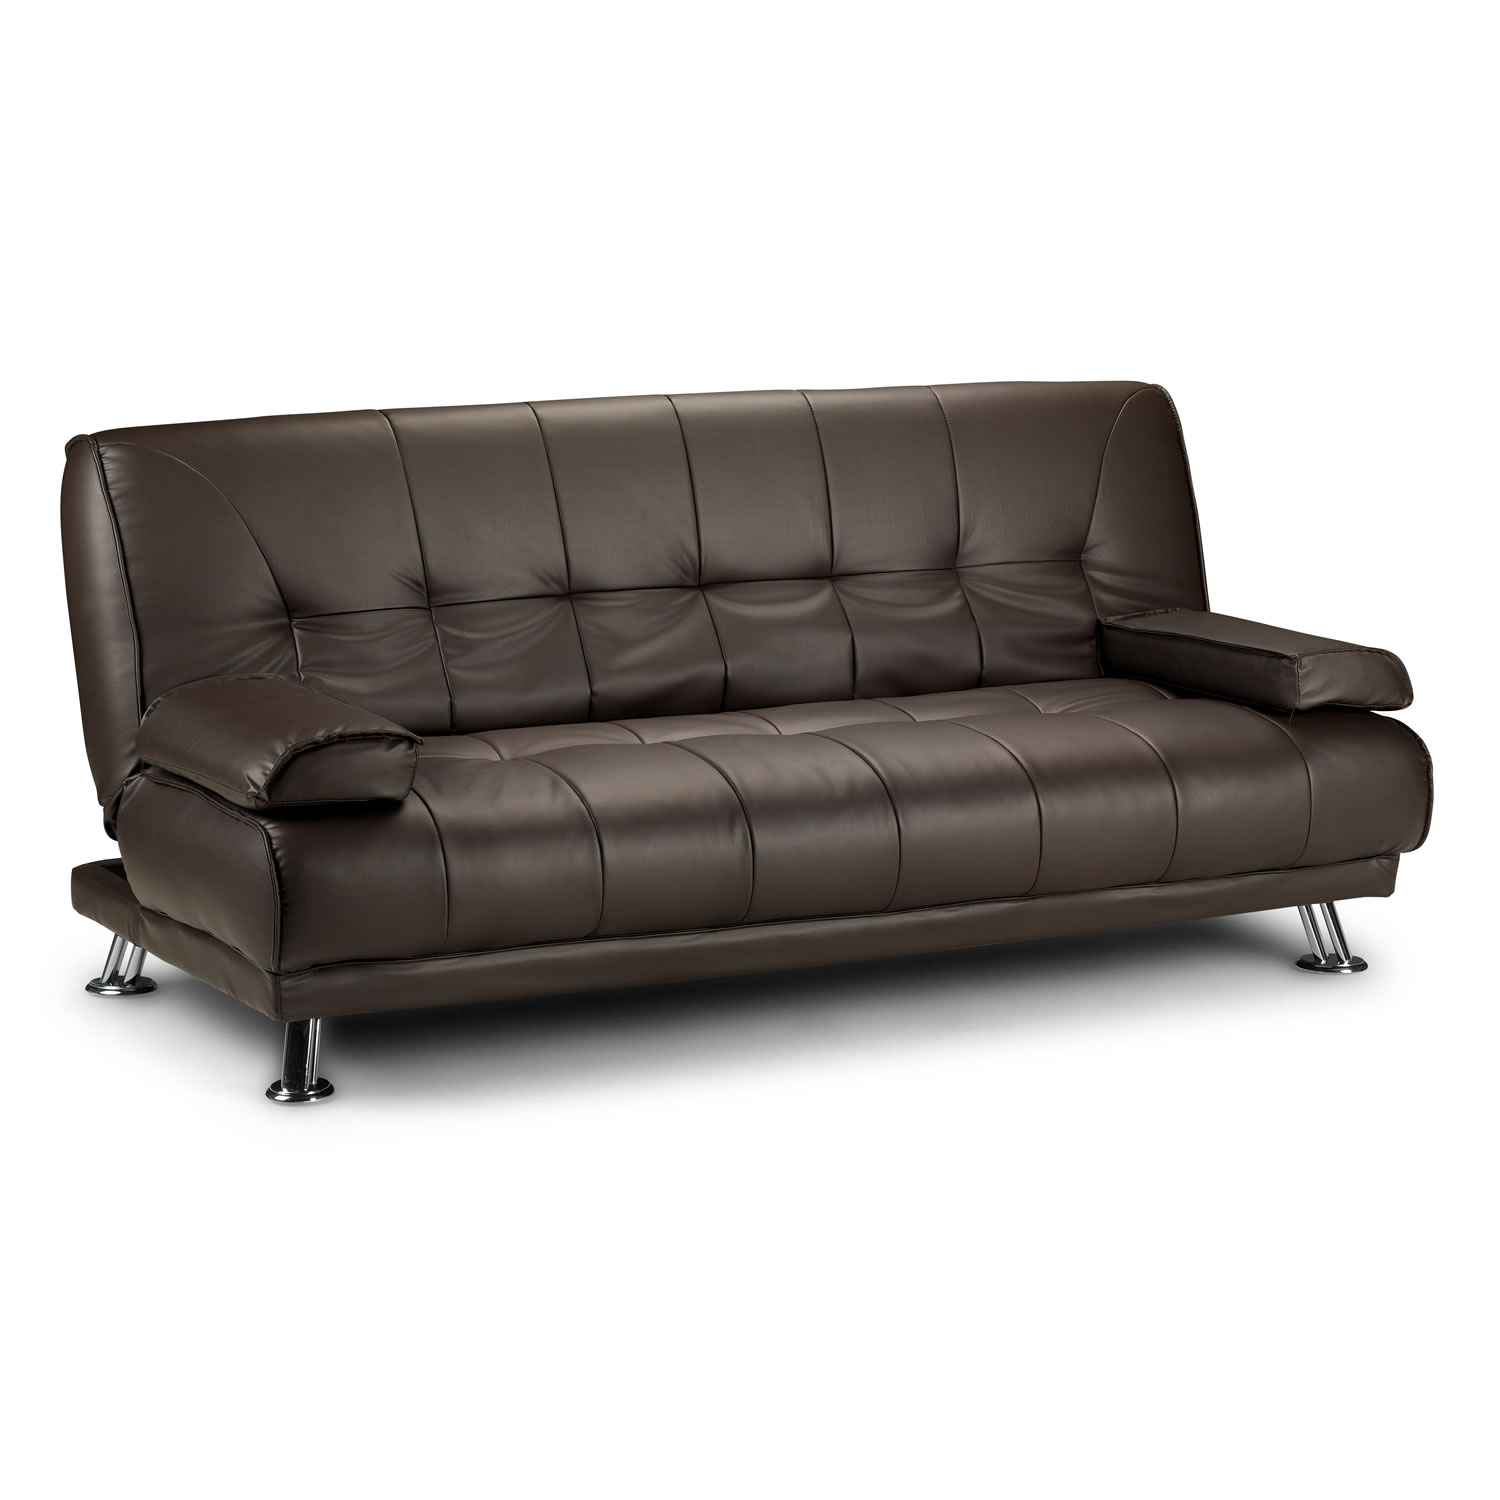 Convertible Leather Sofa Bed Okaycreationsnet